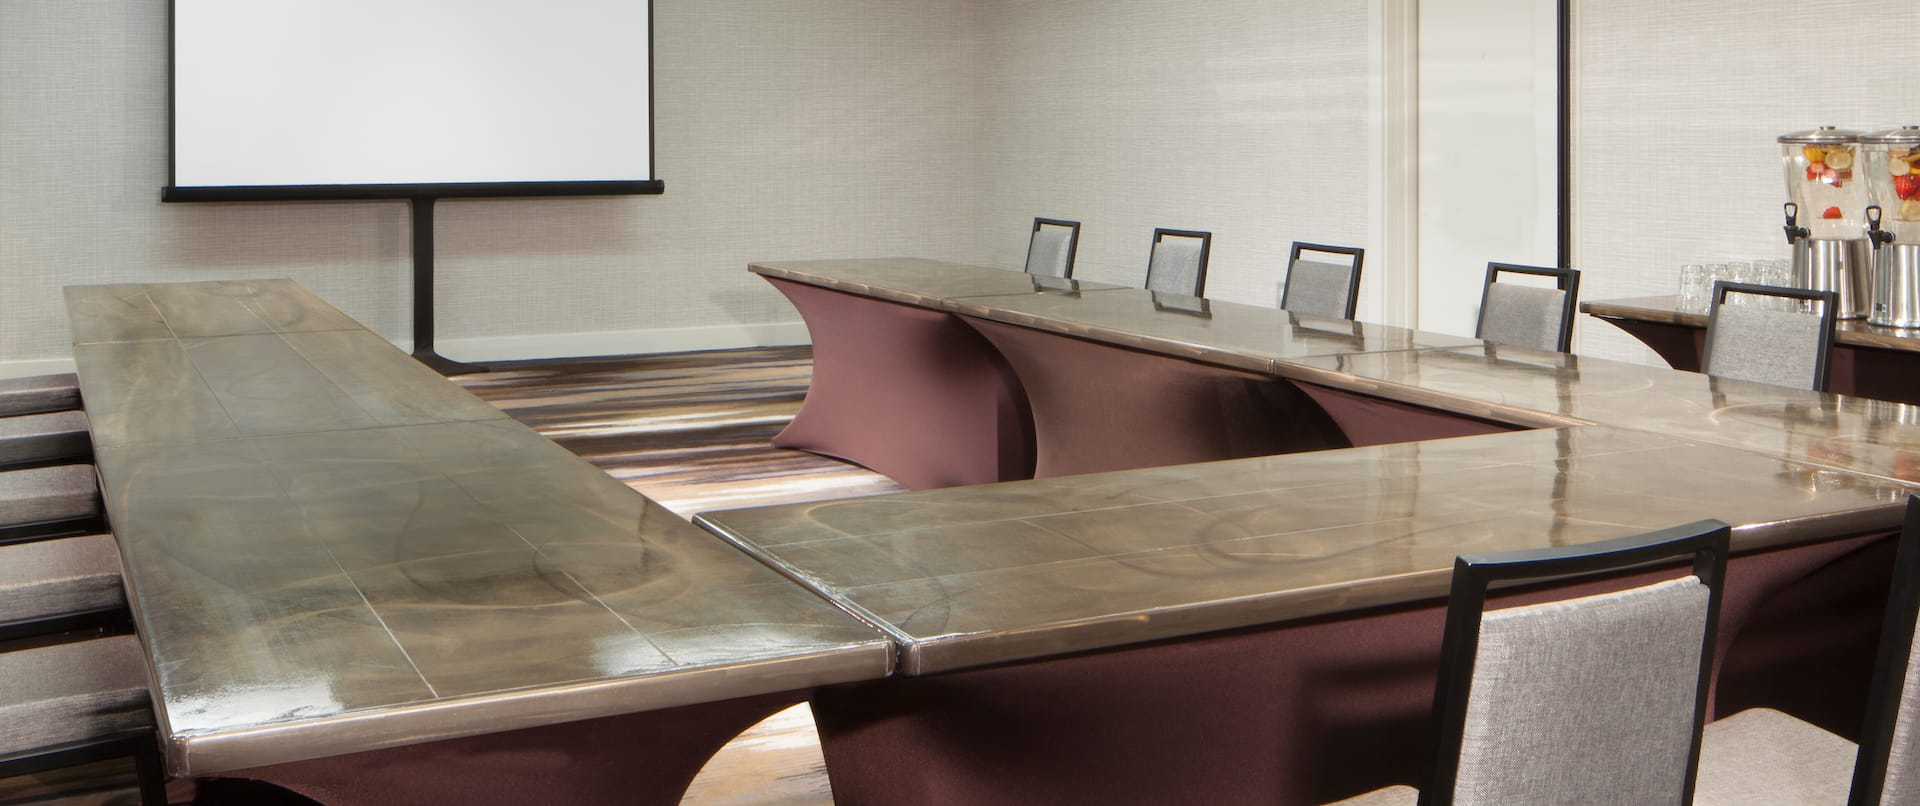 Meeting Room U-Shape Table Layout with Projector Screen